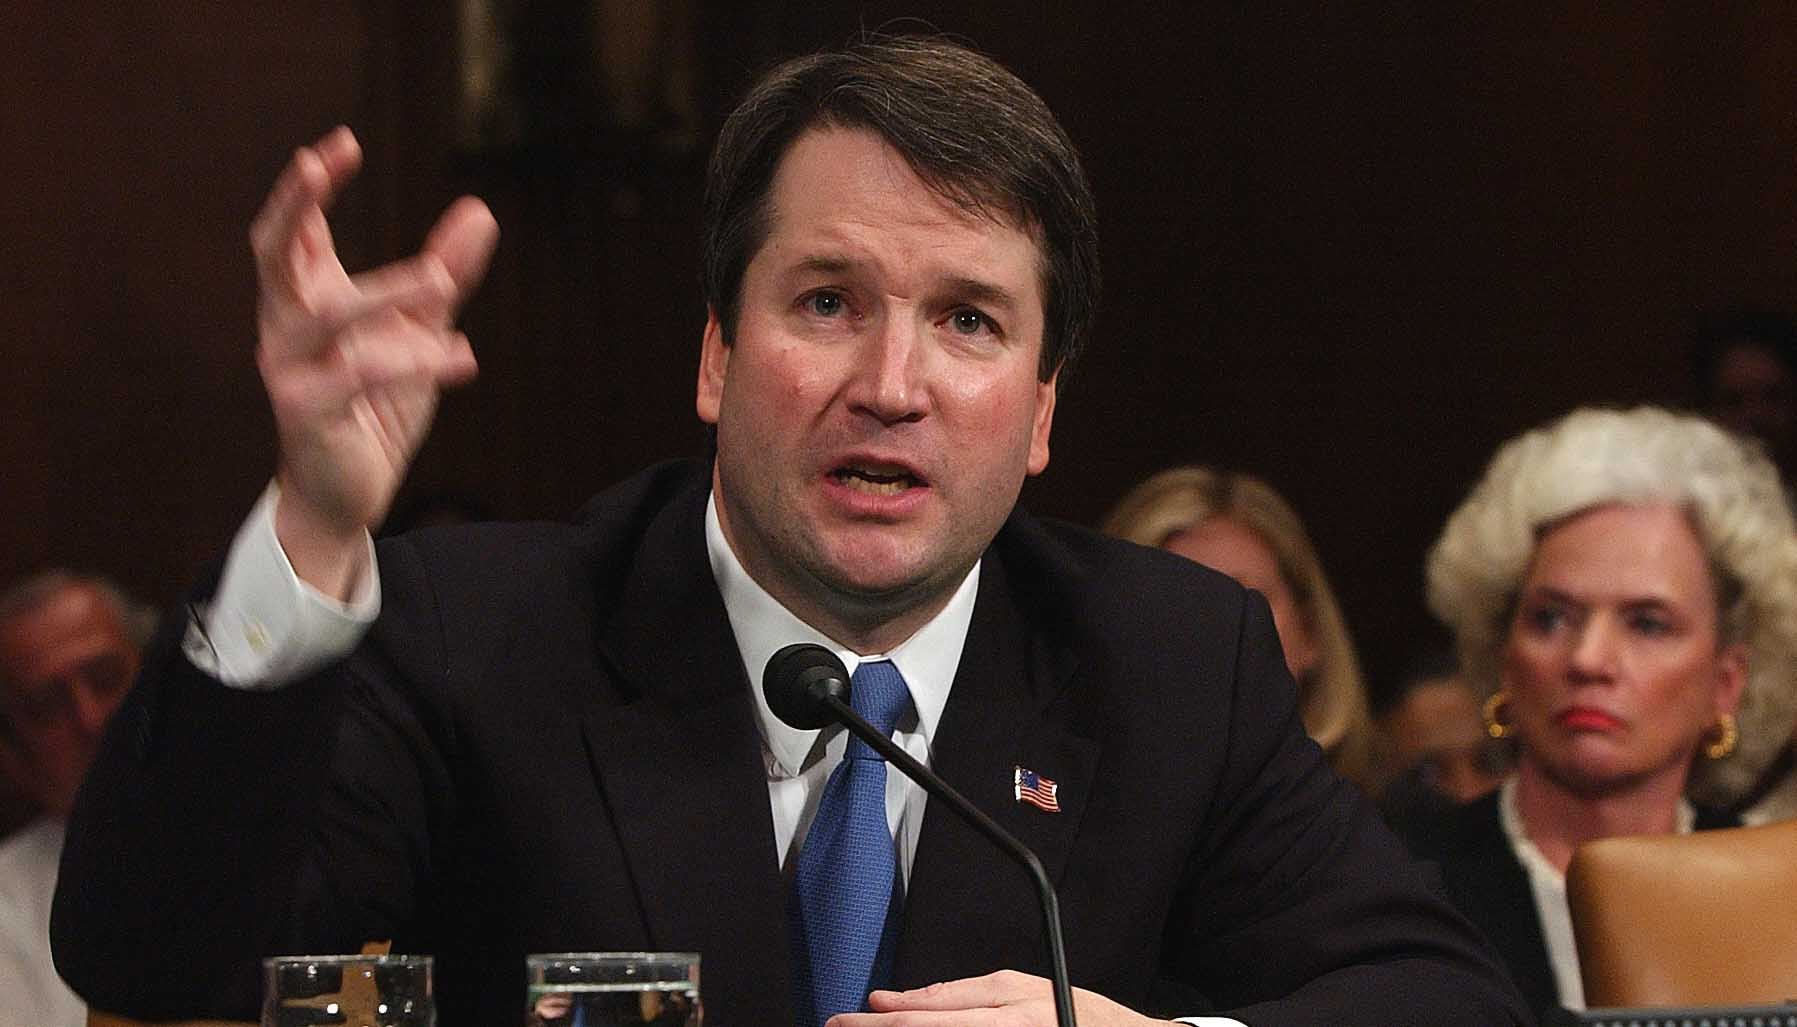 Financial disclosure forms show Supreme Court nominee Brett Kavanaugh racked up tens of thousands of dollars of credit card debt to buy Washington Nationals tickets for himself and friends. (AP Photo/Dennis Cook, File)